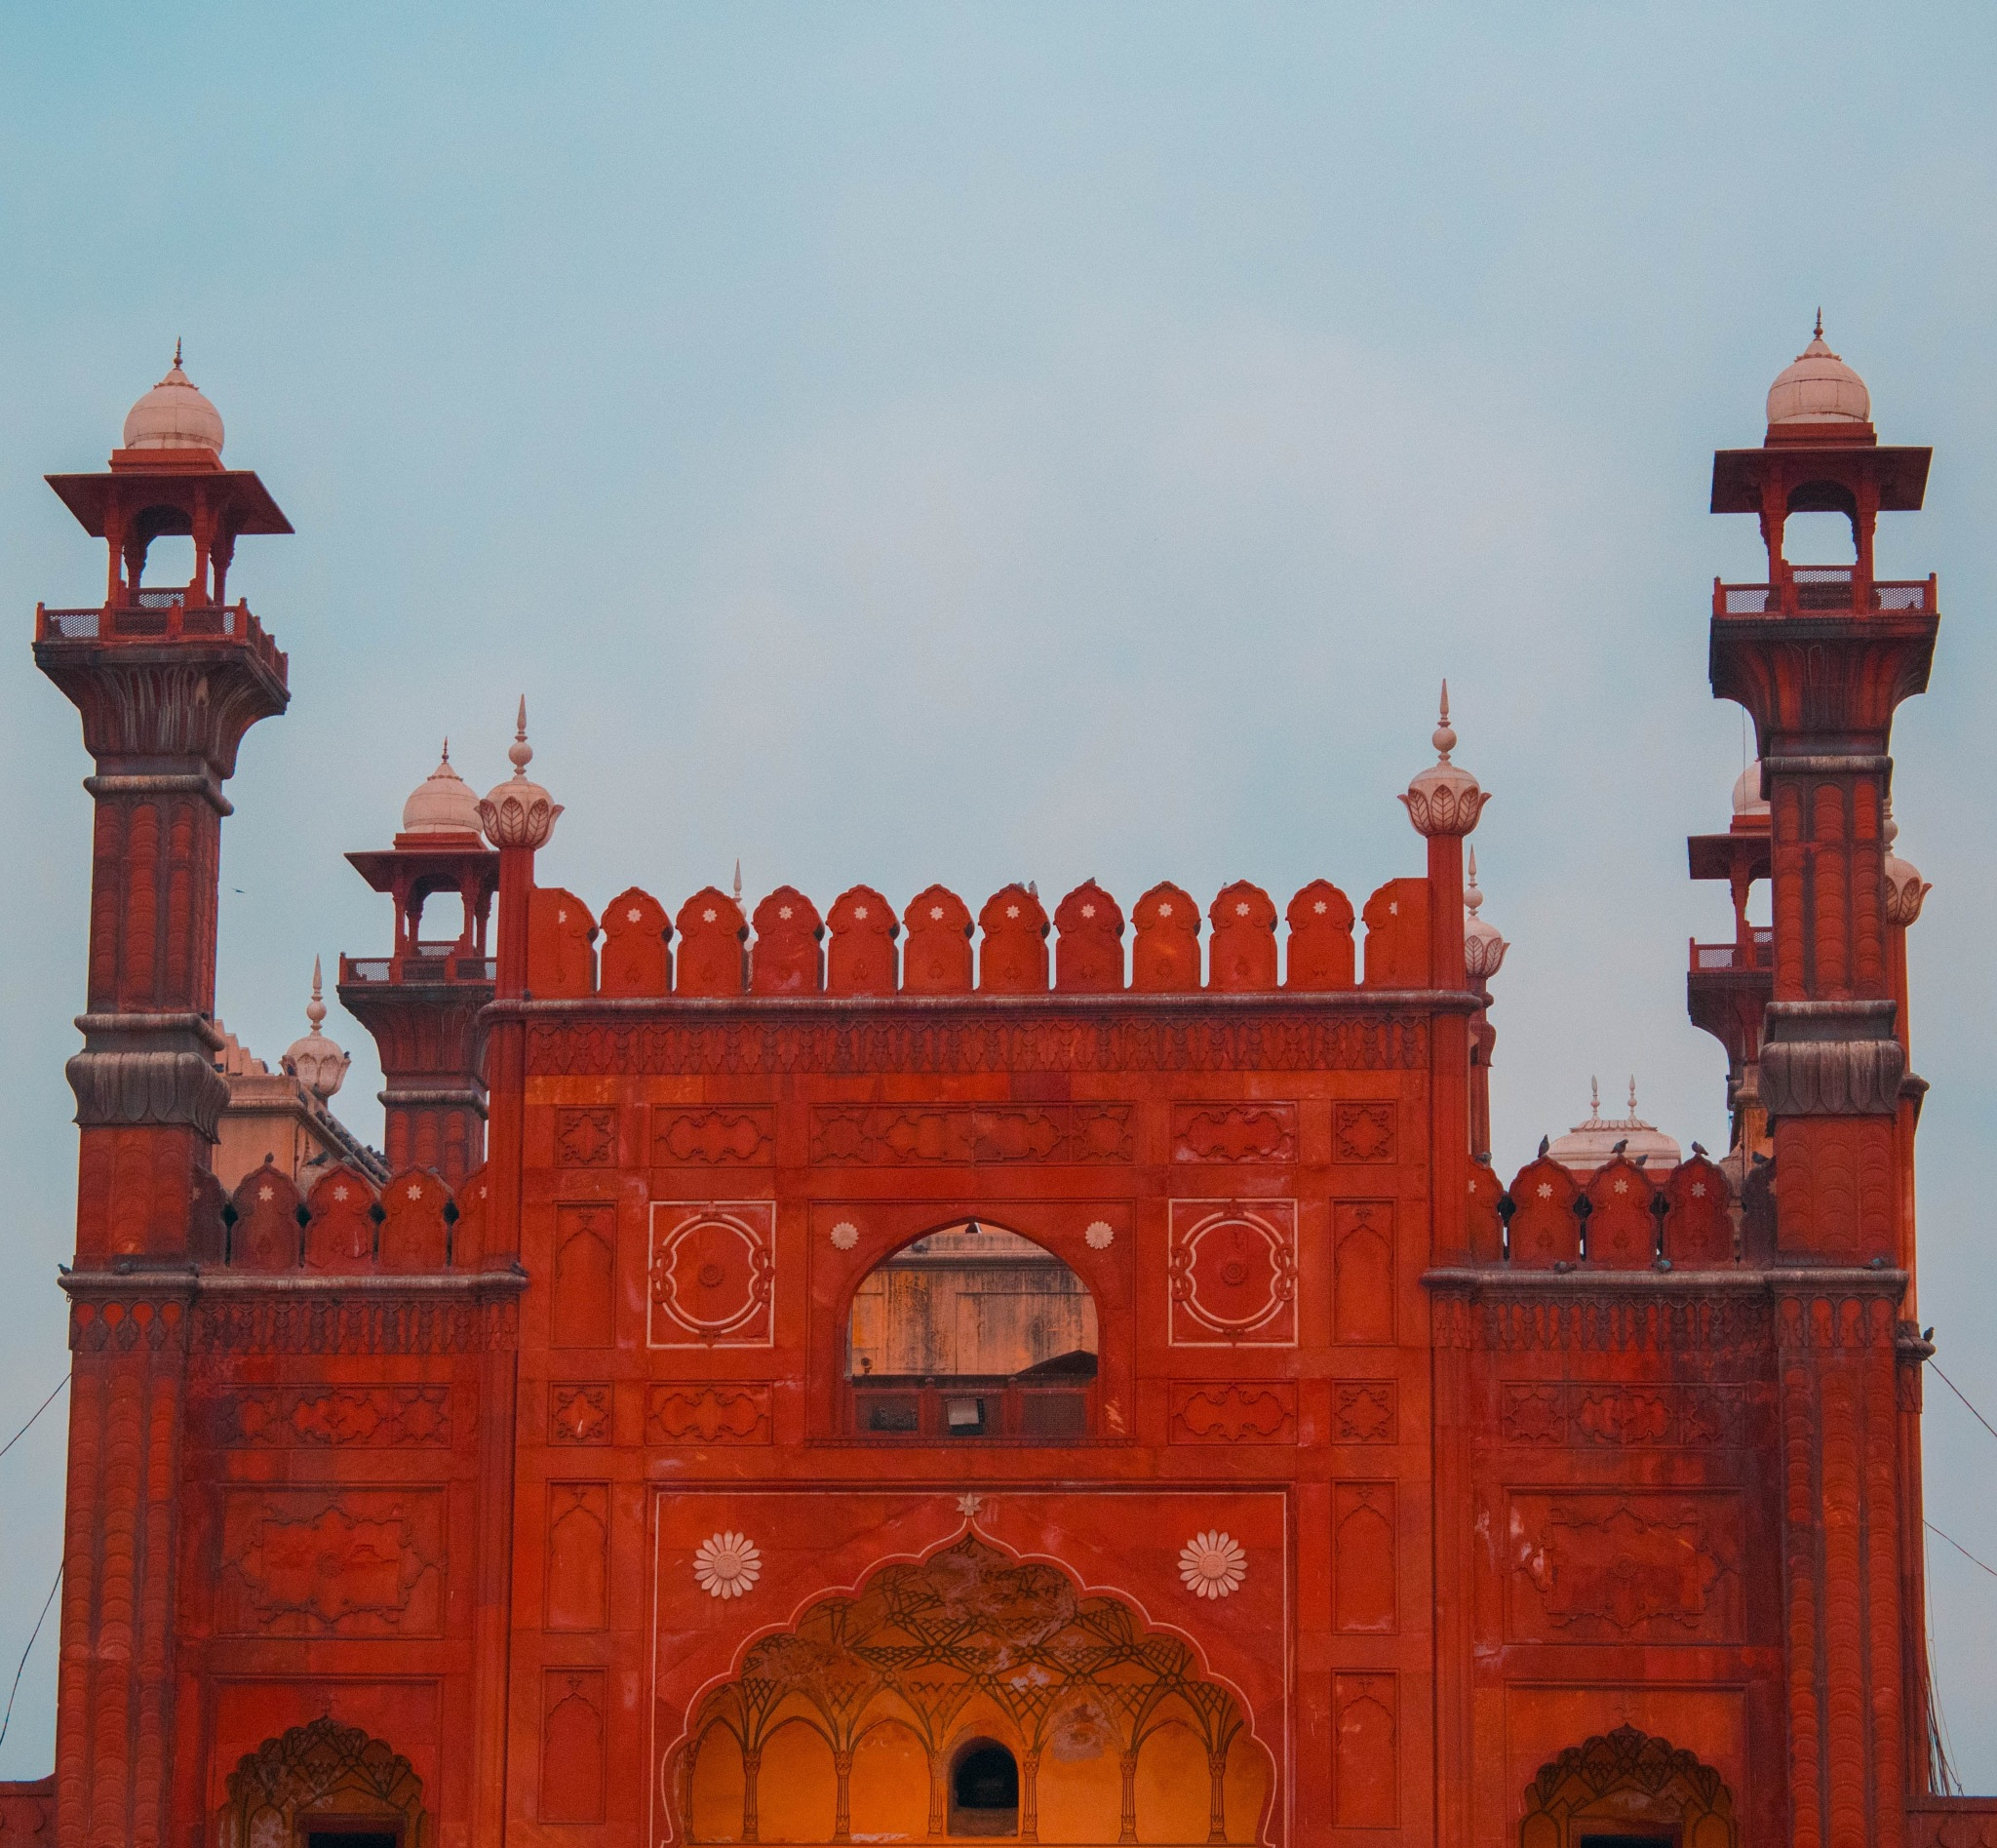 The Beauty of Old Architecture by Heenshah